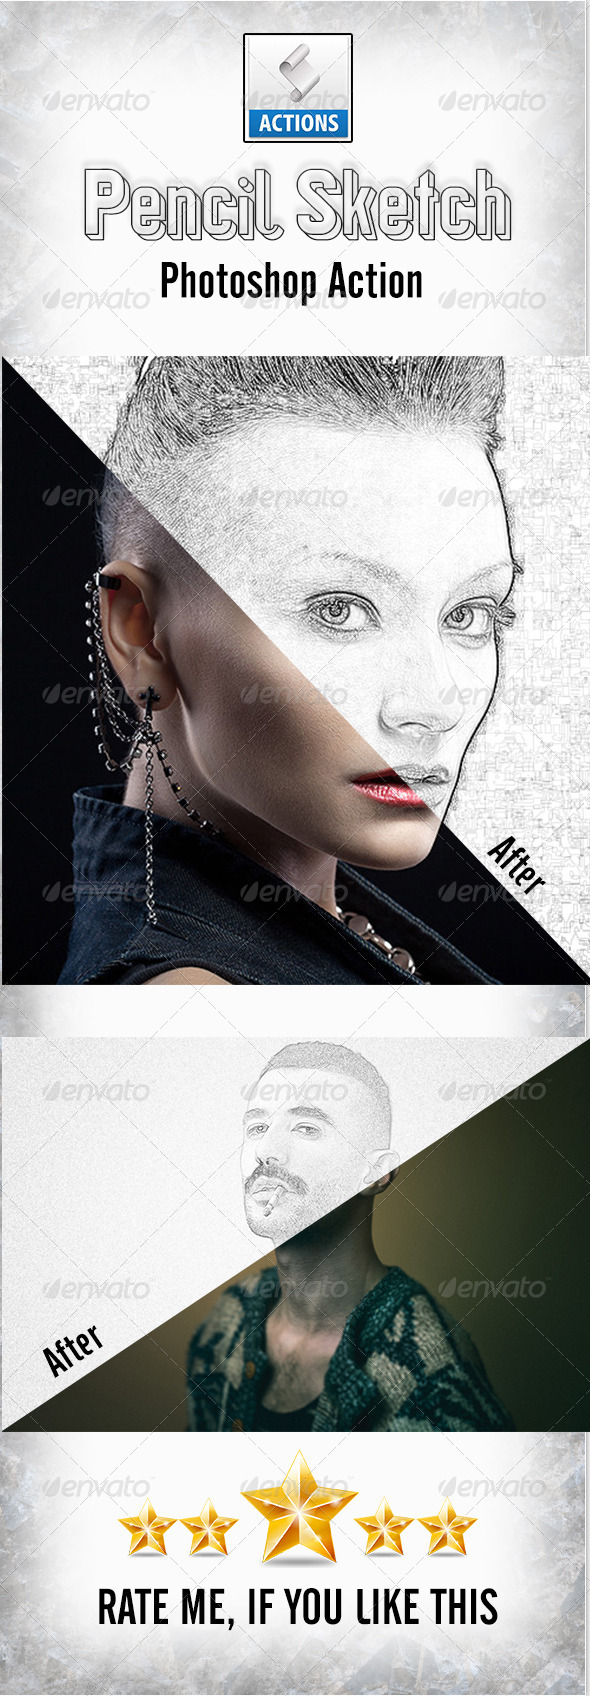 GraphicRiver Pencil Sketch Photoshop Action 8701256